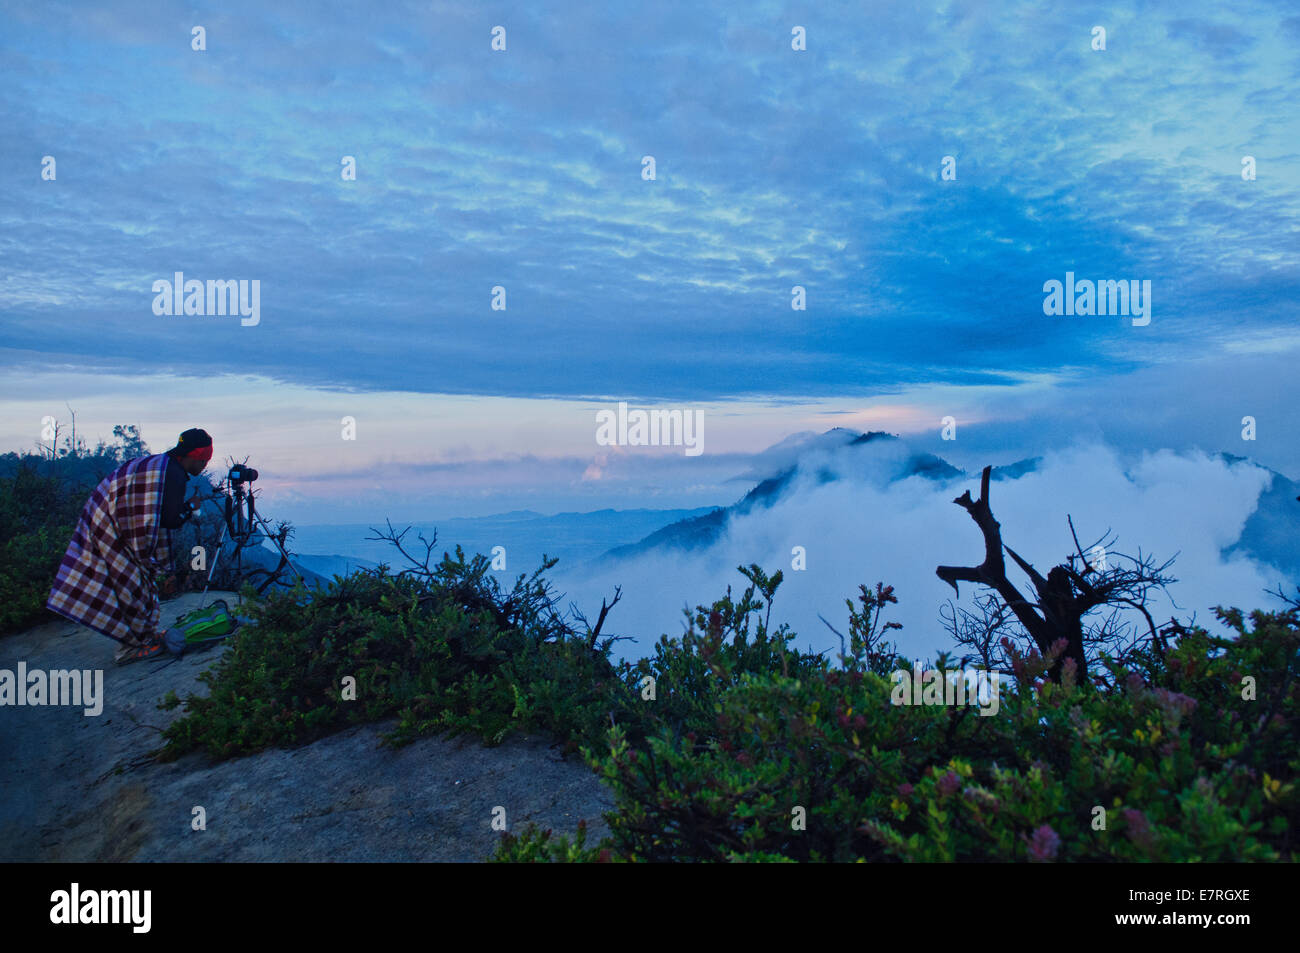 A photographer on top of the Mount Kawah Ijen in East Java, Indonesia - Stock Image